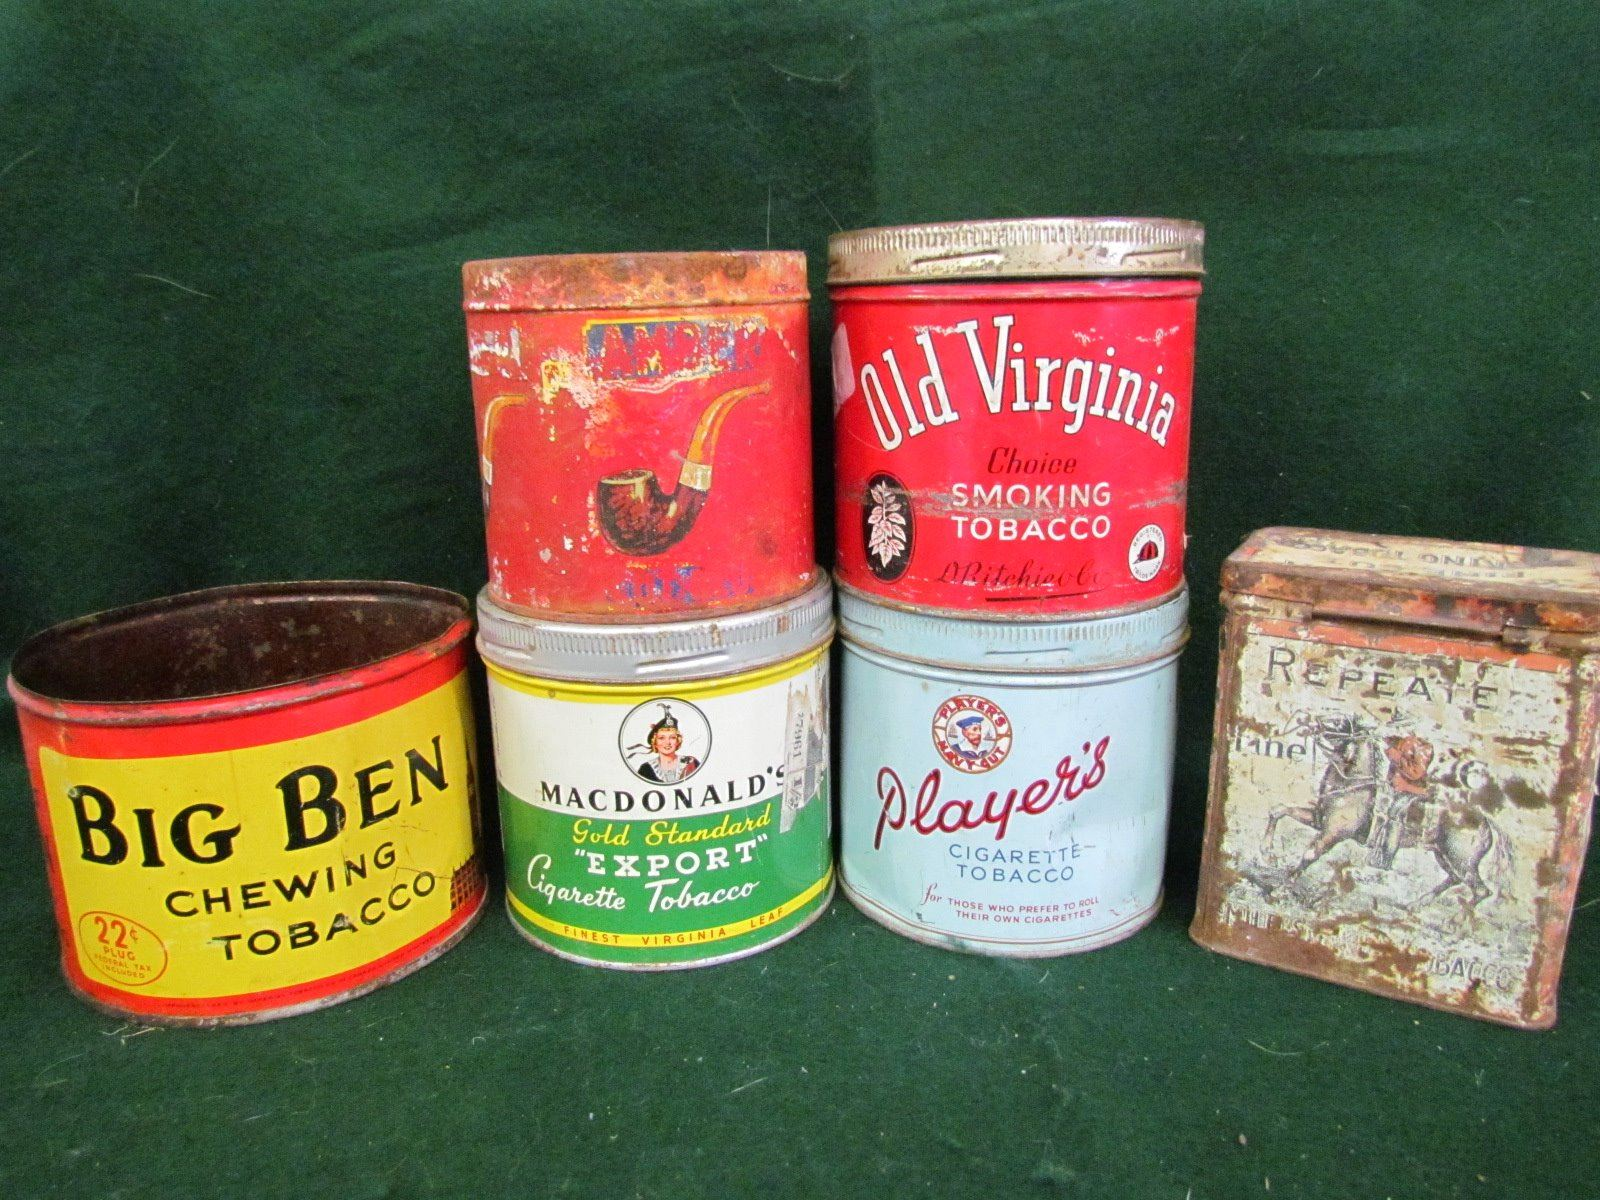 Repeater, Old Virginia, Player's, Macdonald's, Amber, Big Ben tobacco tins